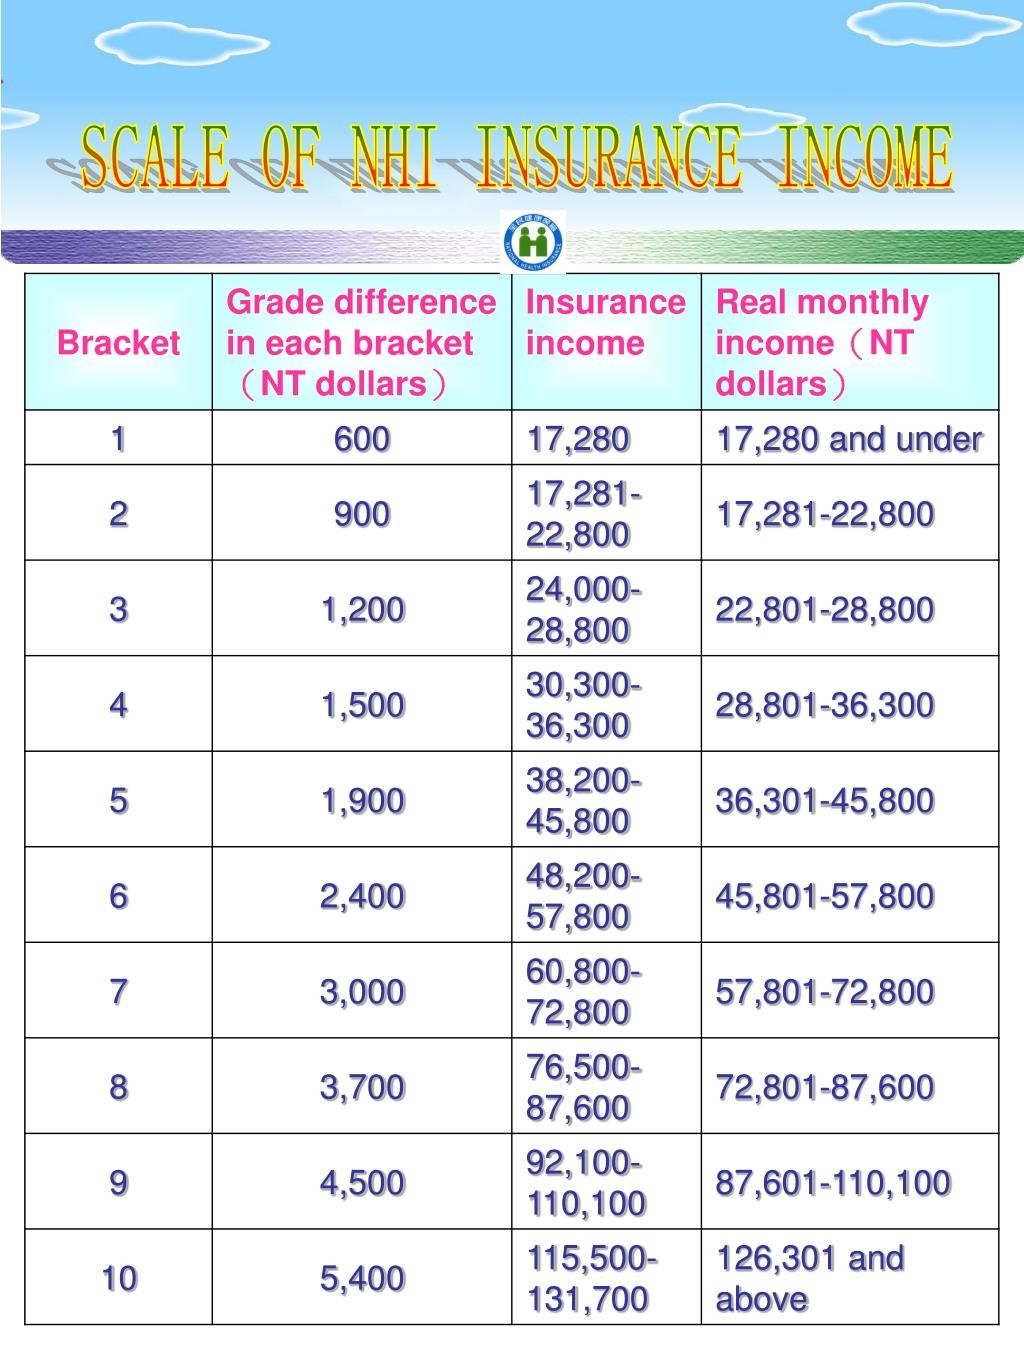 SCALE OF NHI INSURANCE INCOME